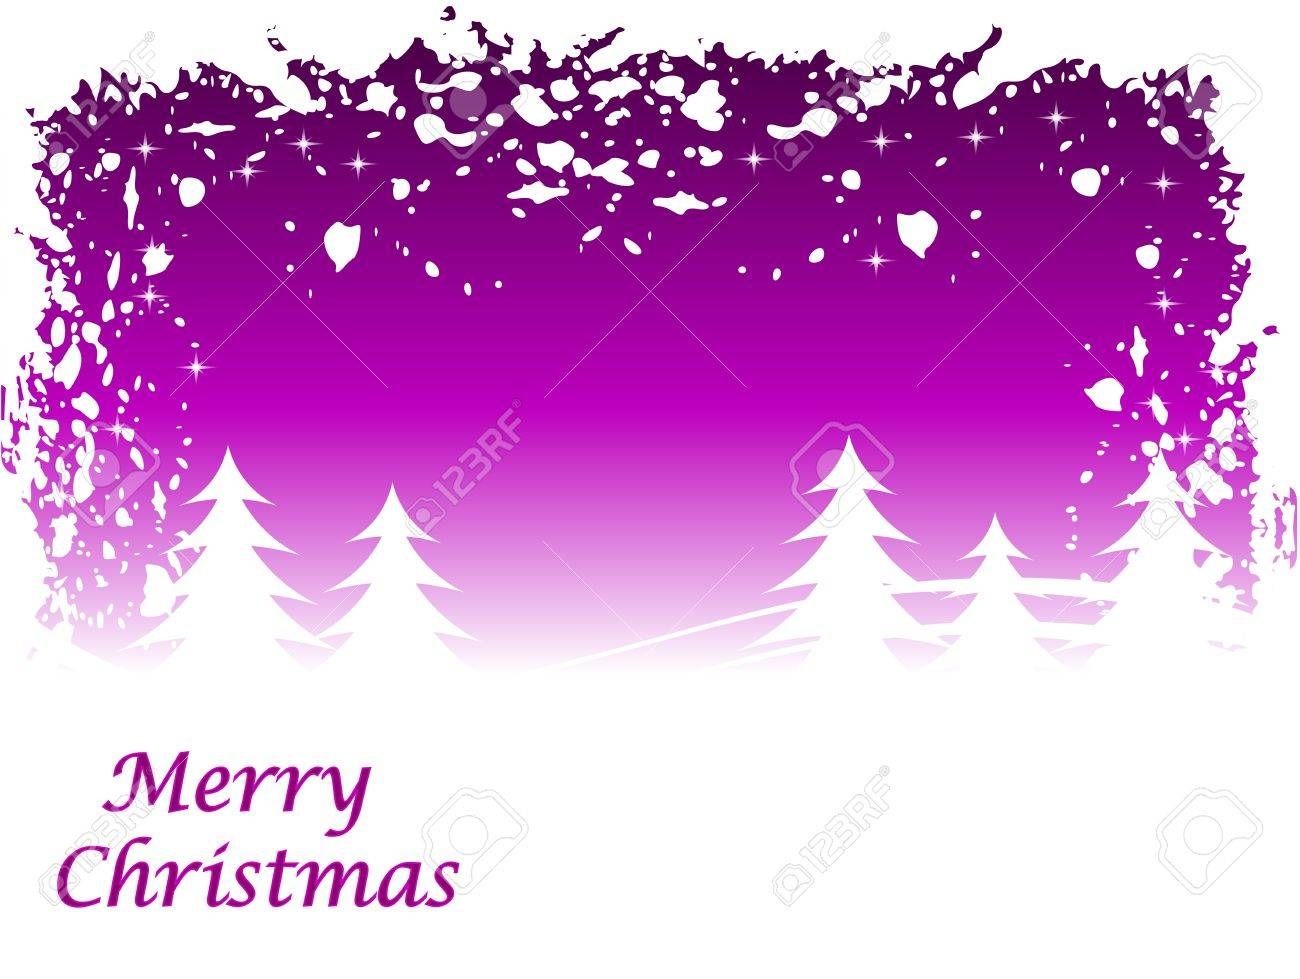 Abstract  grunge winter scene with a mauve background and snowy christmas trees. Stock Vector - 8345108